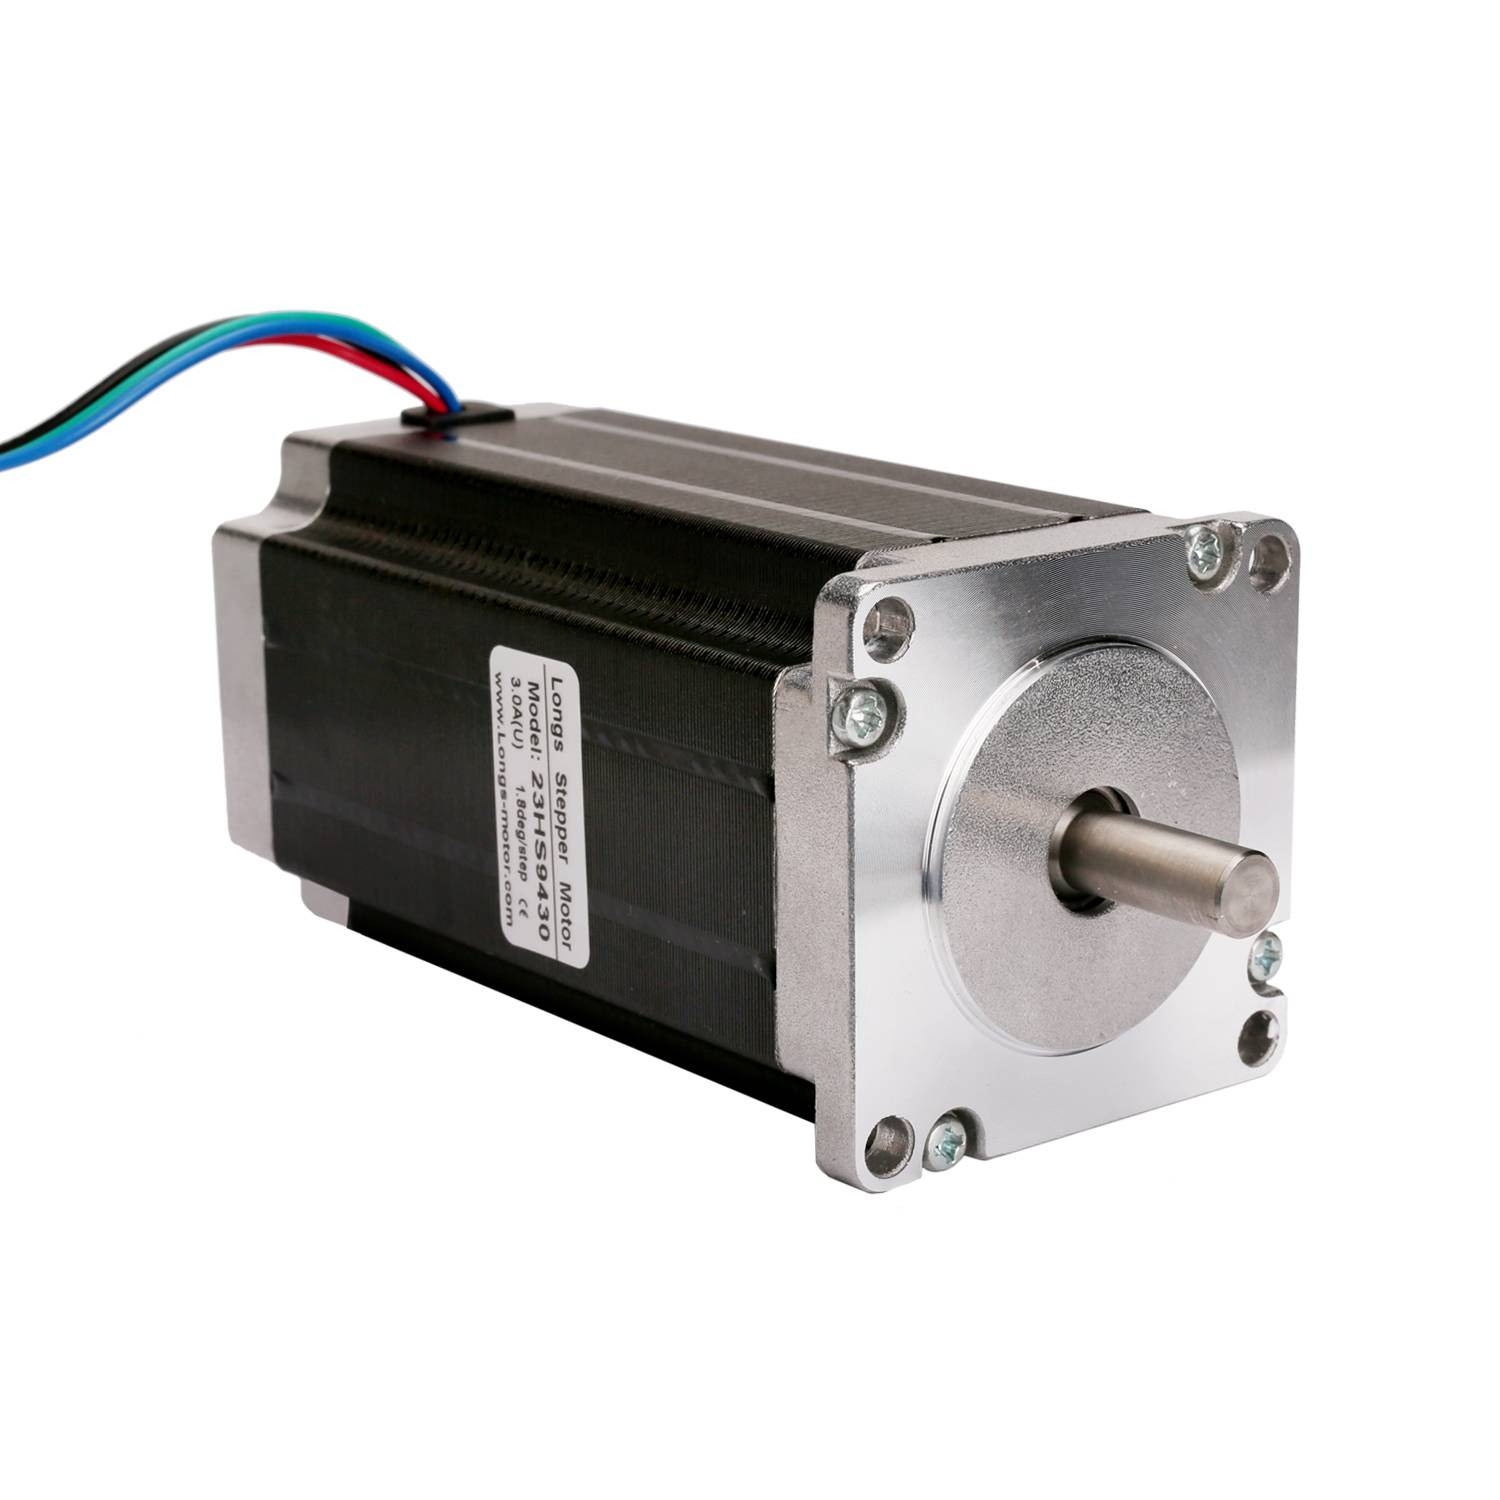 Հիբրիդ stepper MOTOR-Nema24 Featured Image